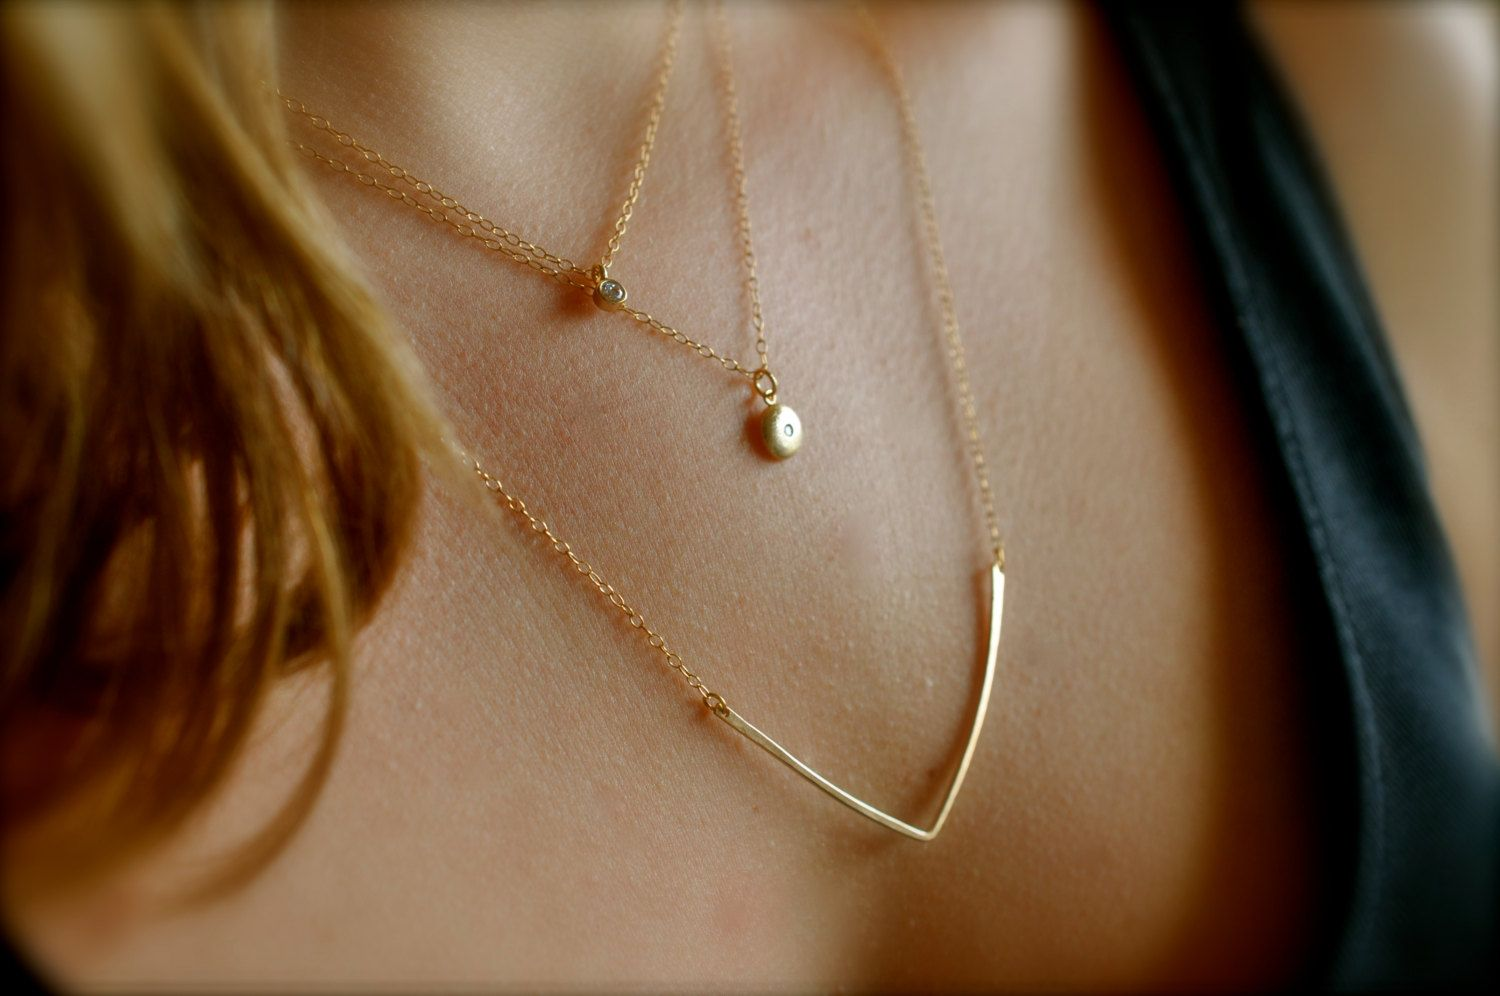 Set of 3 Layering Necklaces, 14K Gold Filled, CZ Diamond, Chevron Bar, by Maldemer made in Belgium